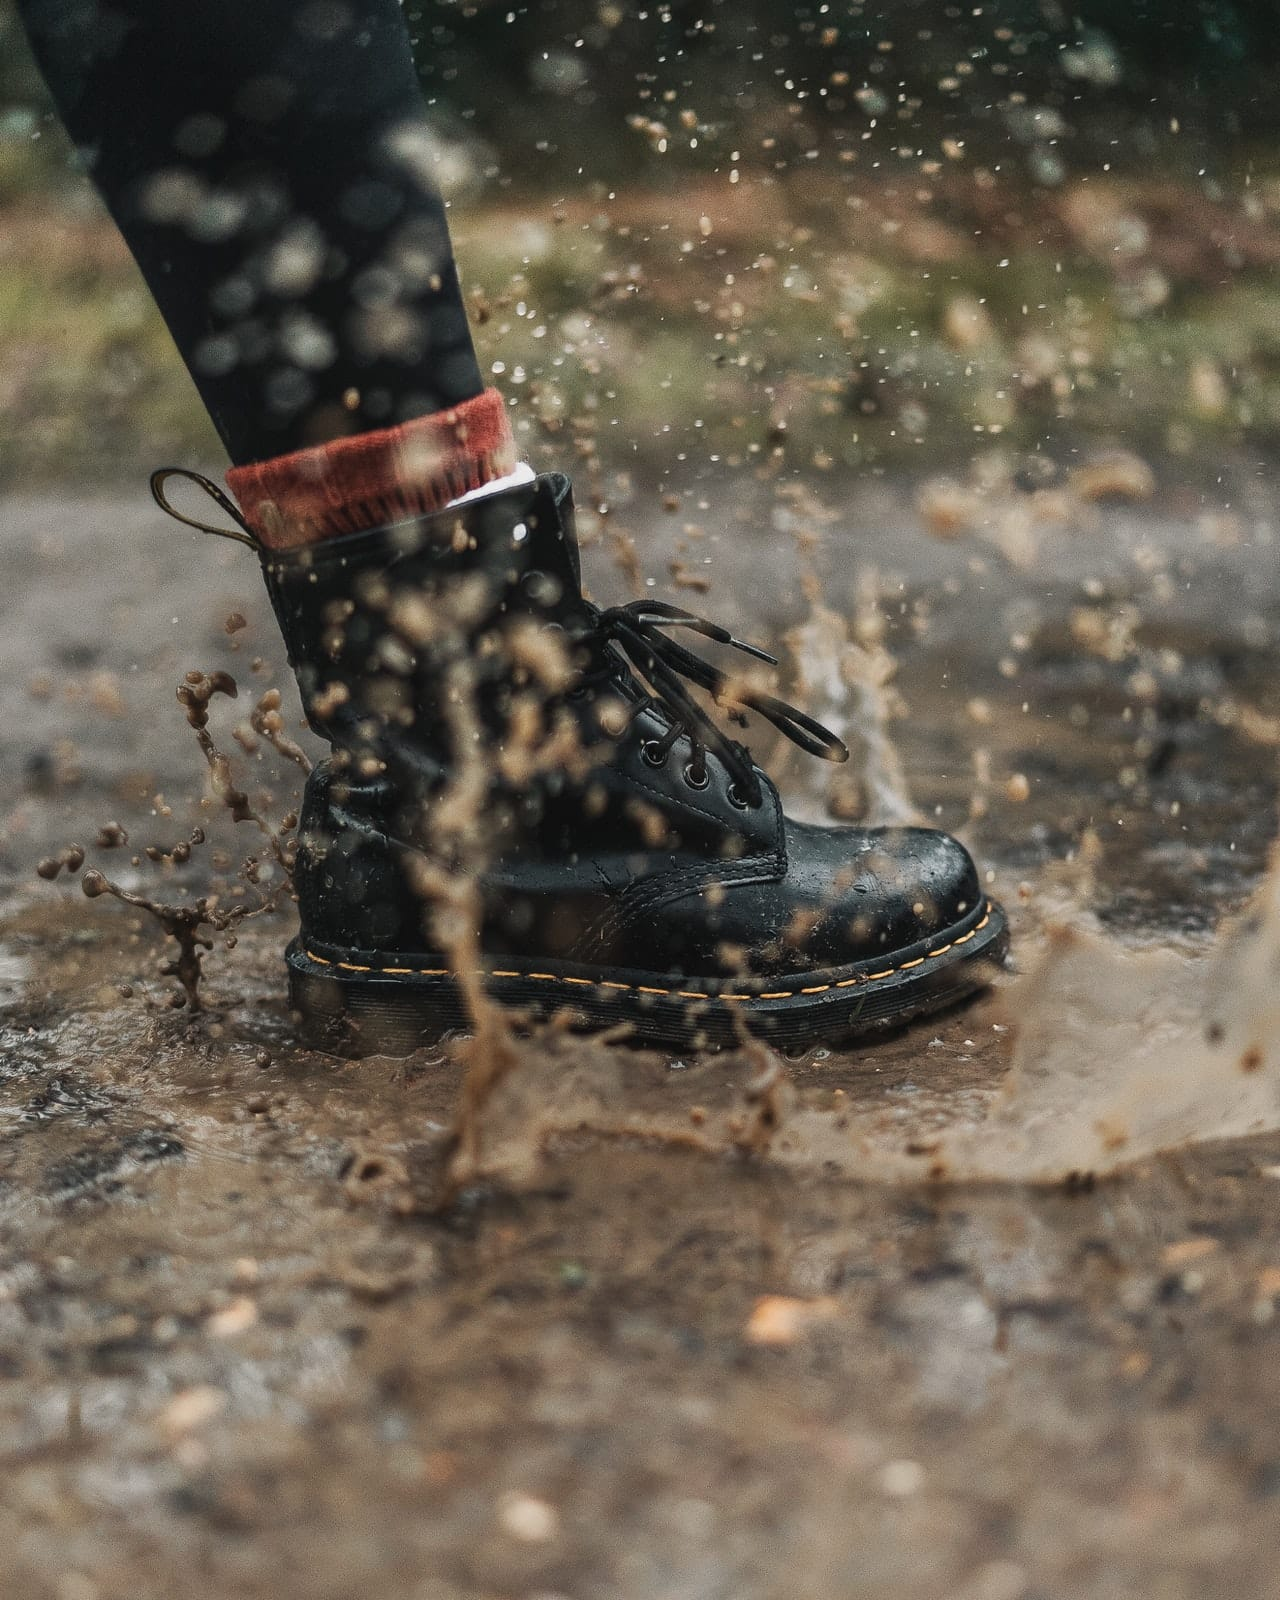 Leather boots in rain - How to protect and care for them?